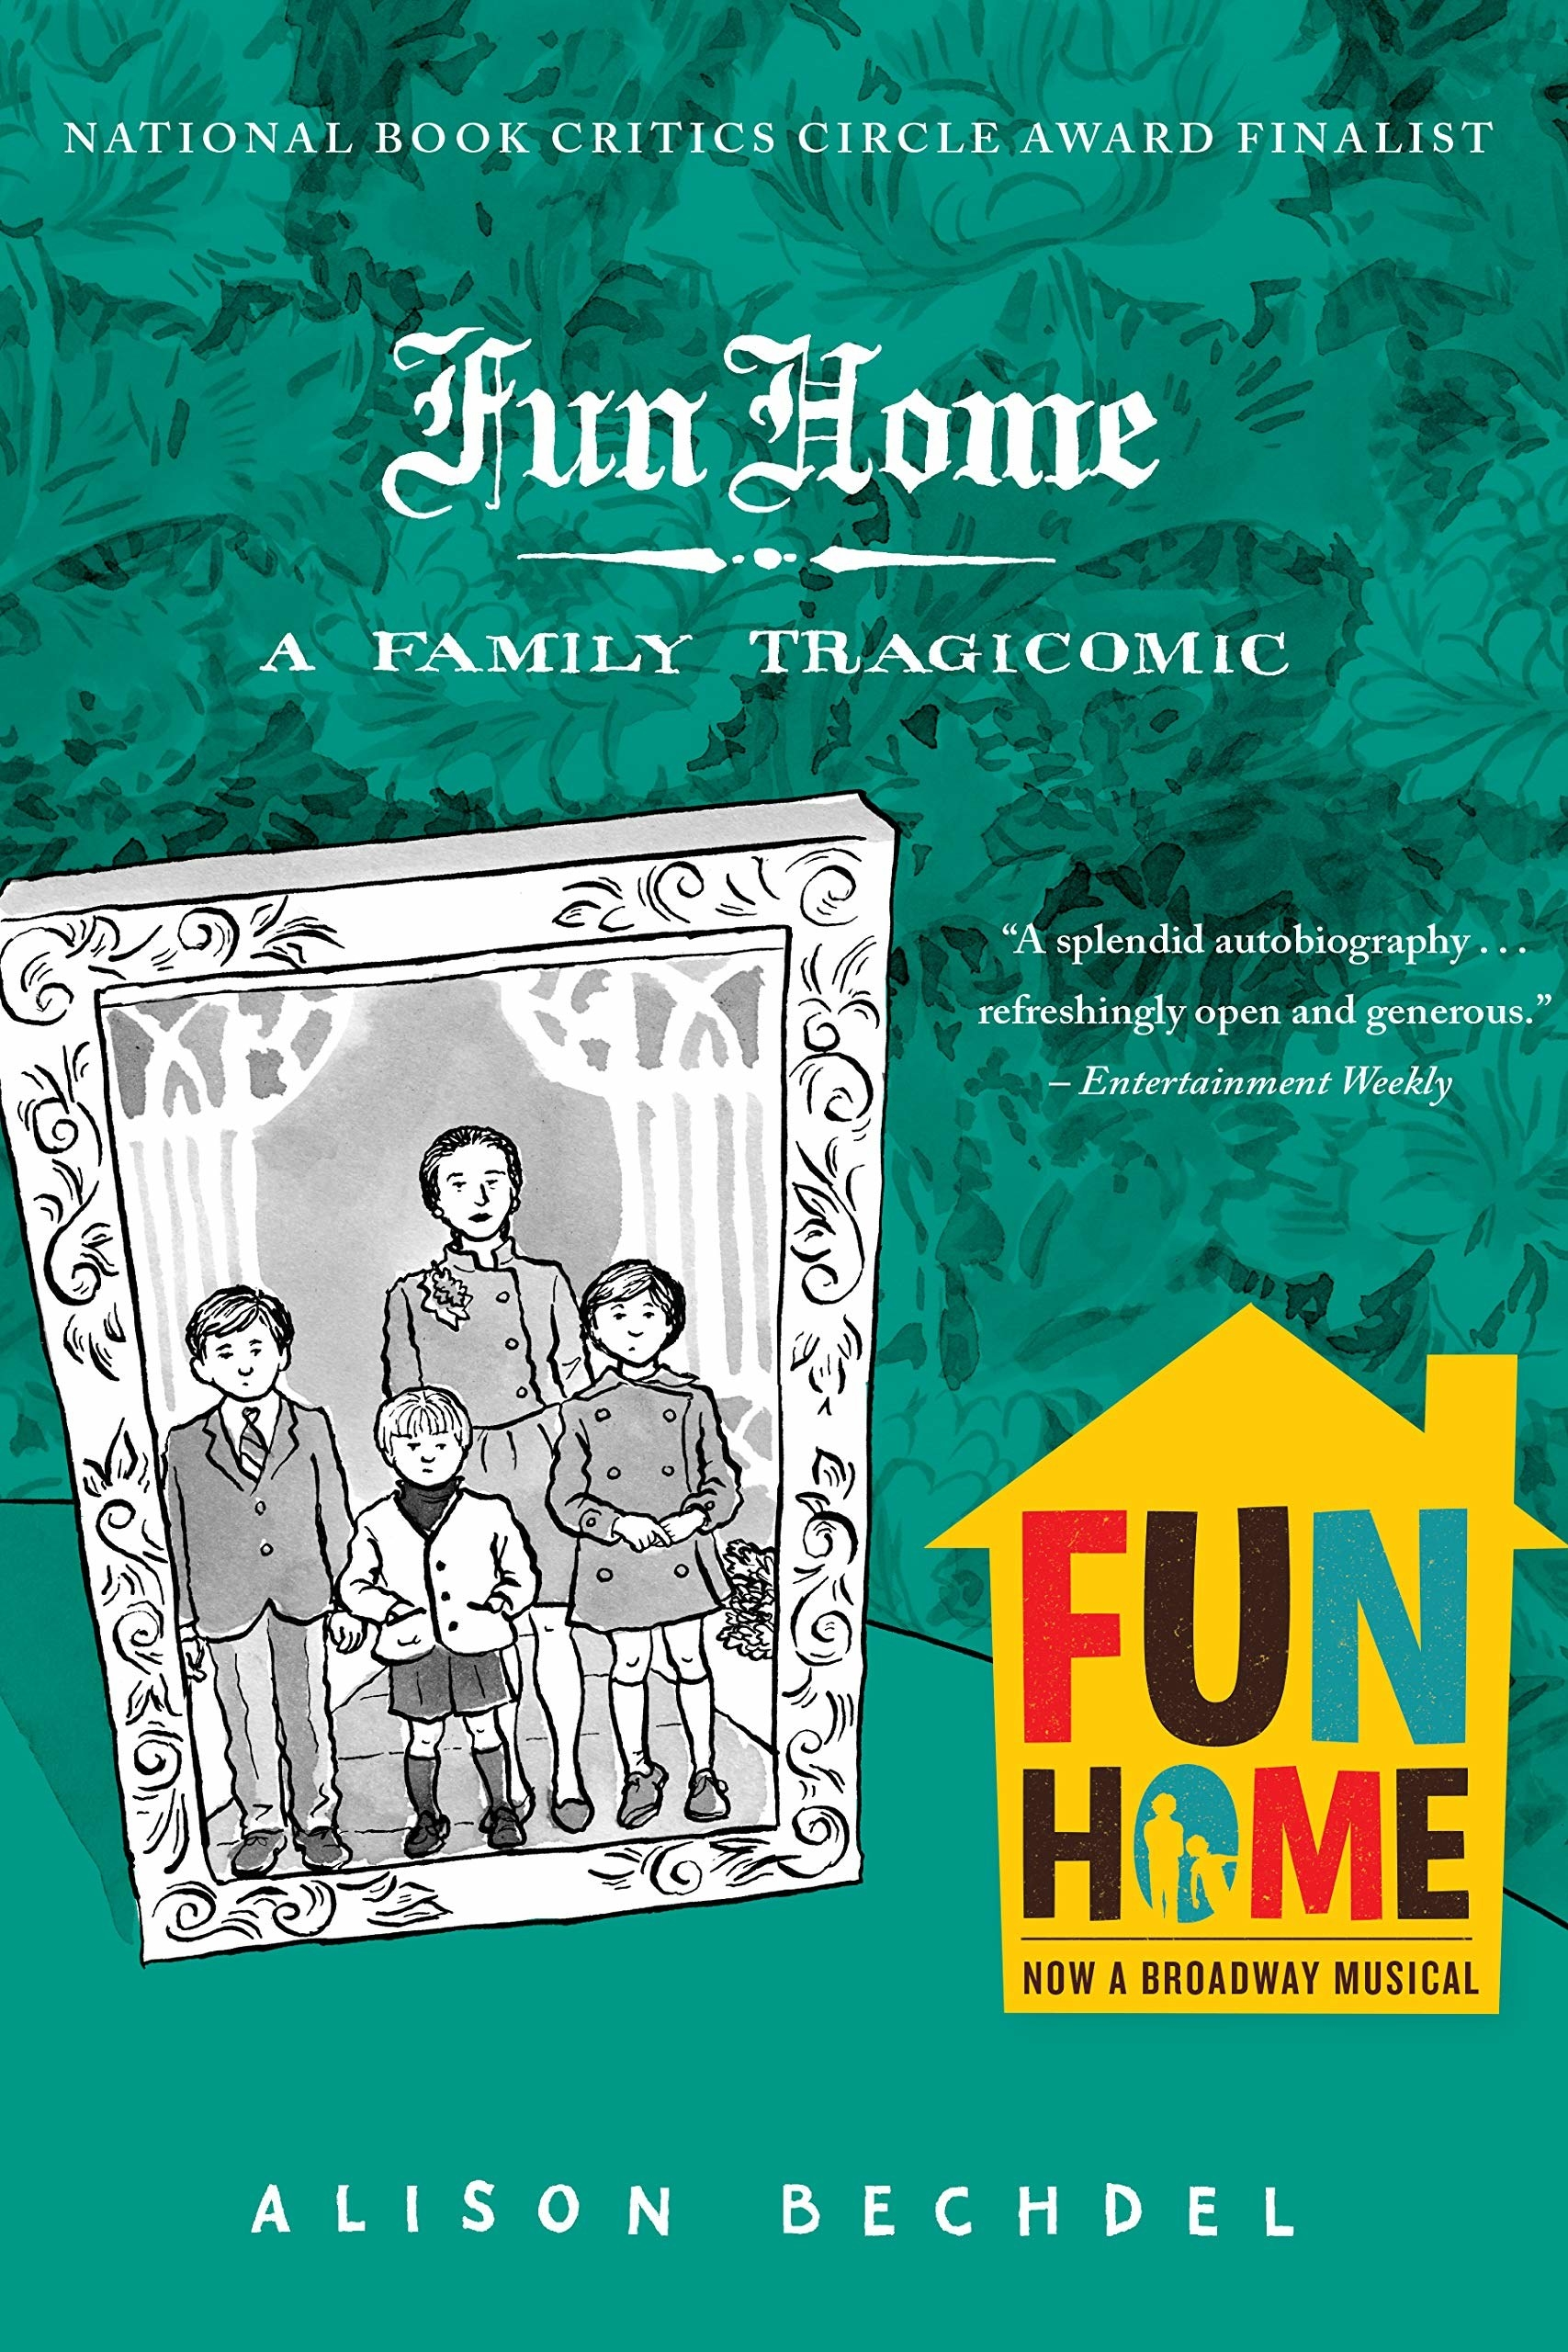 The cover of Fun Home by Alison Bechdel